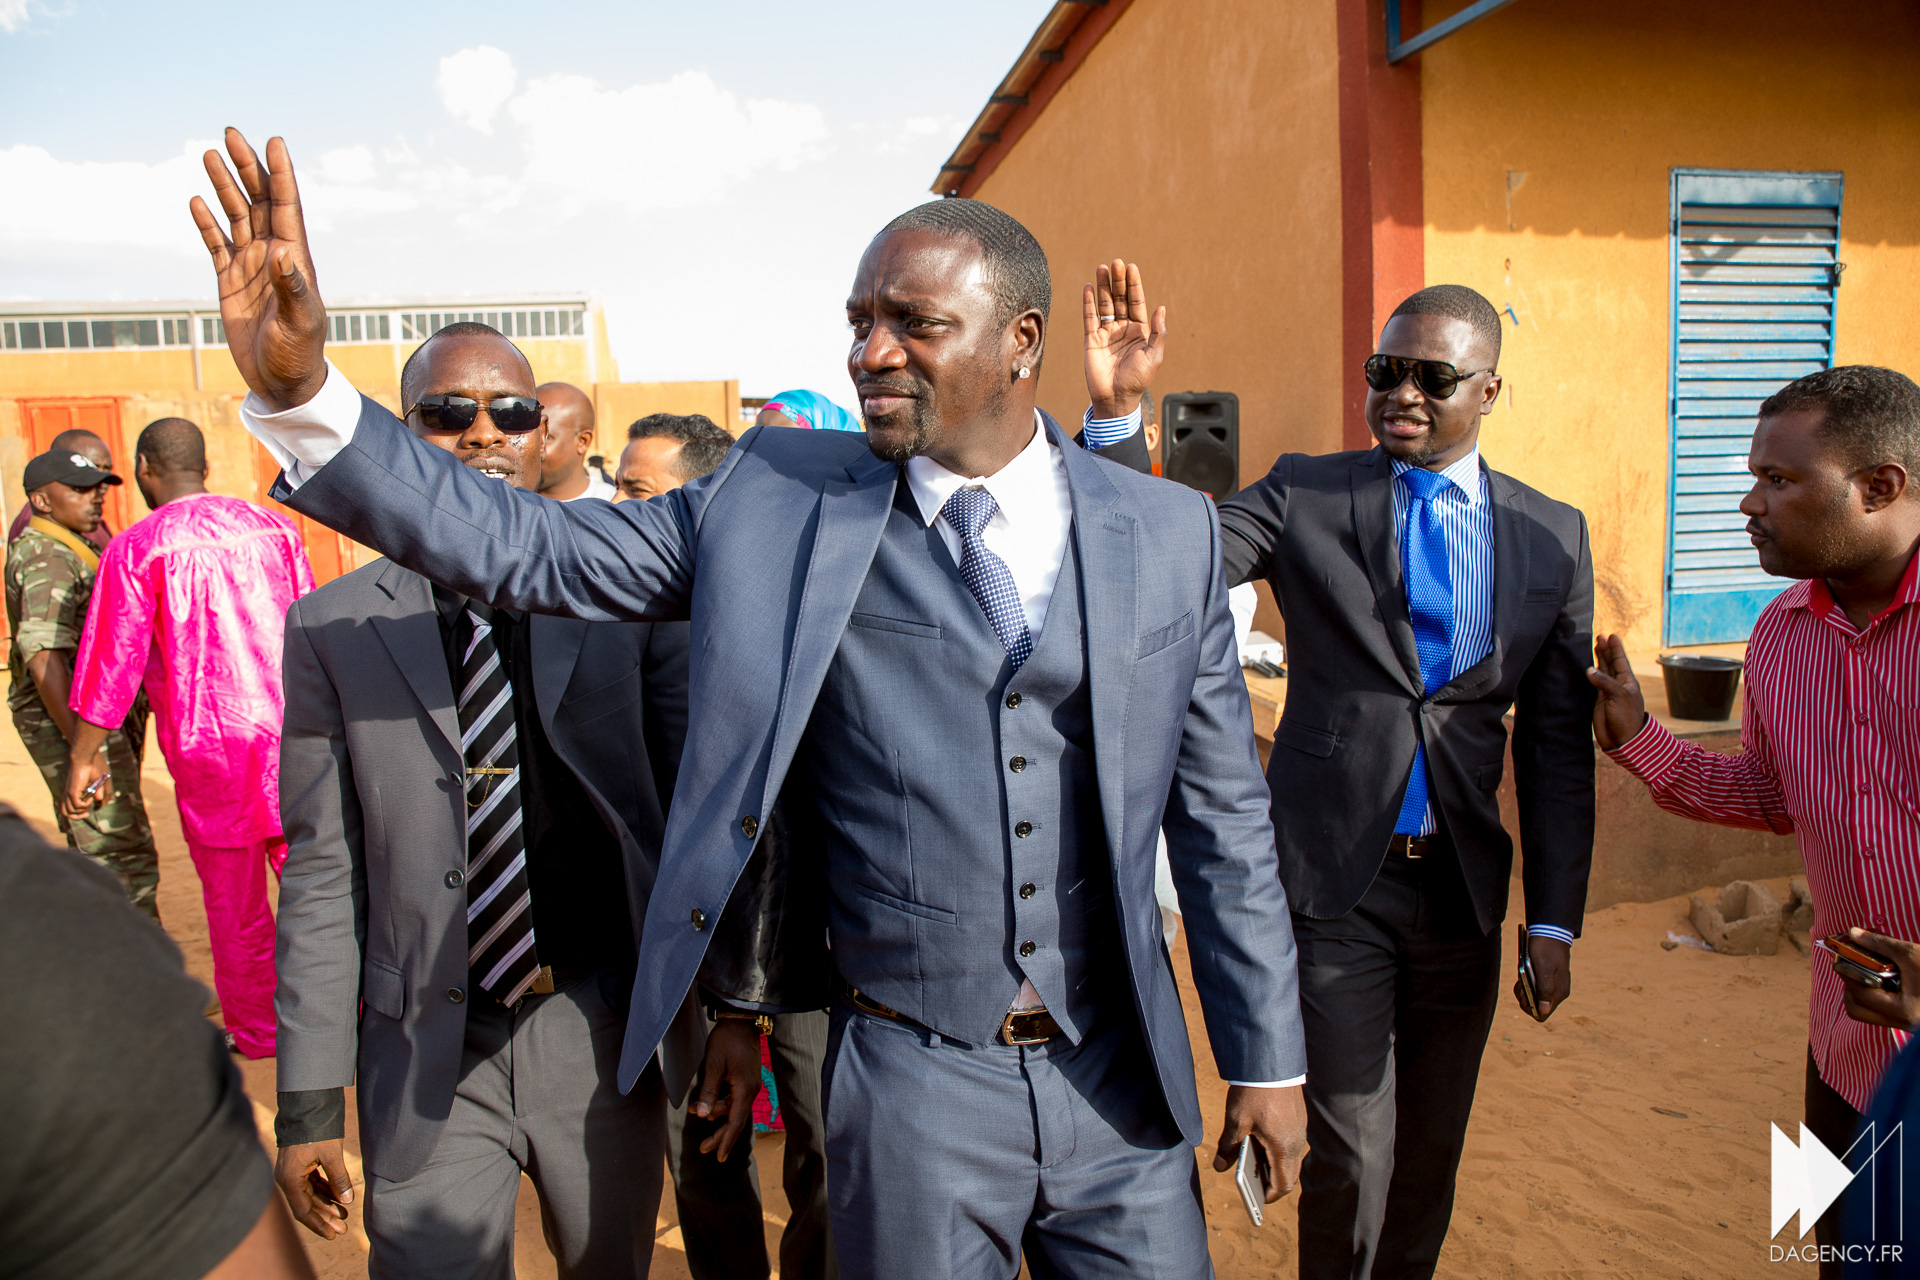 RAPPER 'AKON' TO PROVIDE 600 MILLION AFRICANS WITH ELECTRICITY THROUGH SOLAR PANELS! (VIDEO)